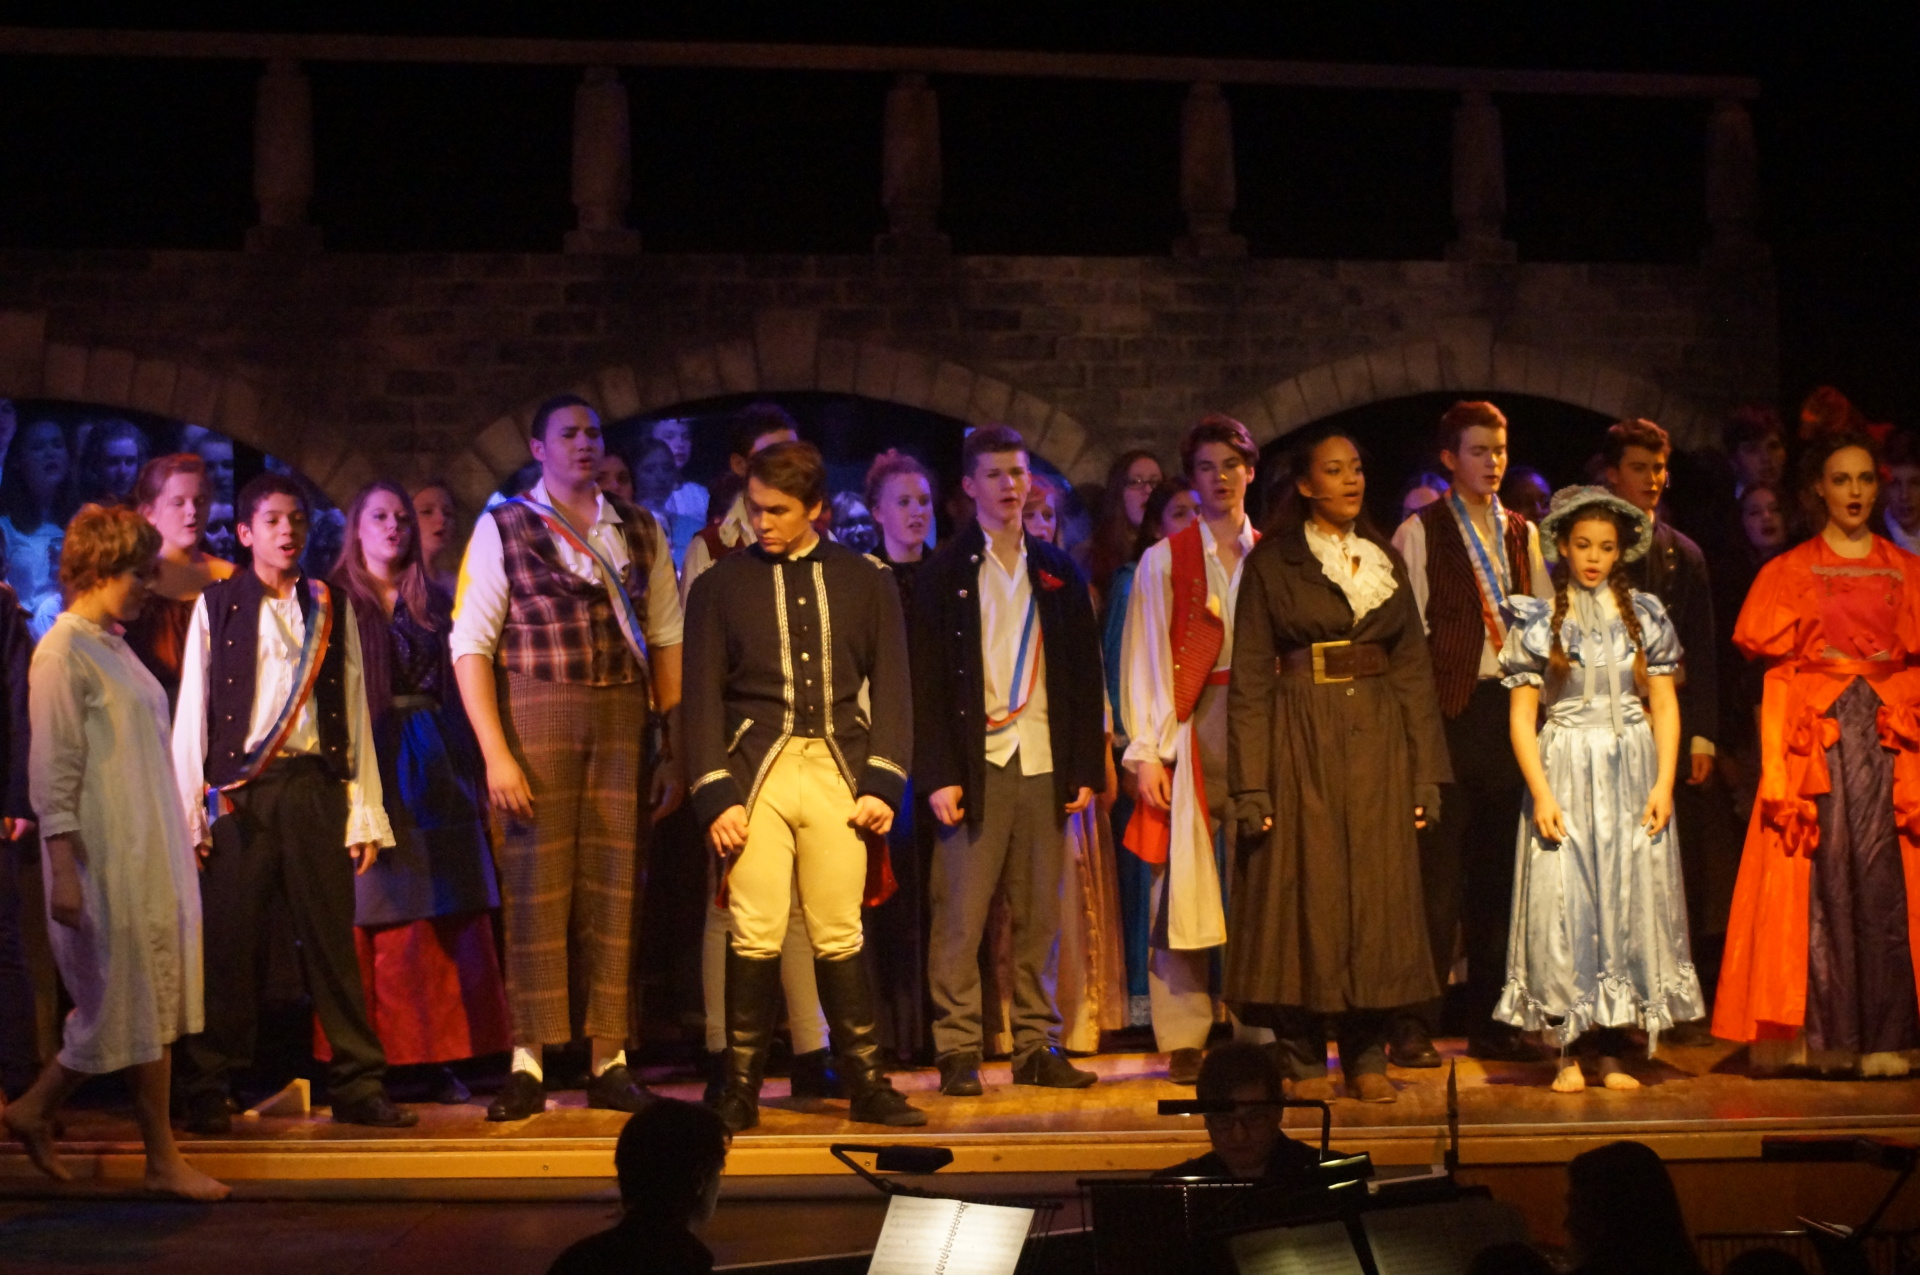 Les Miserables complete costume set for Youth and Adult productions